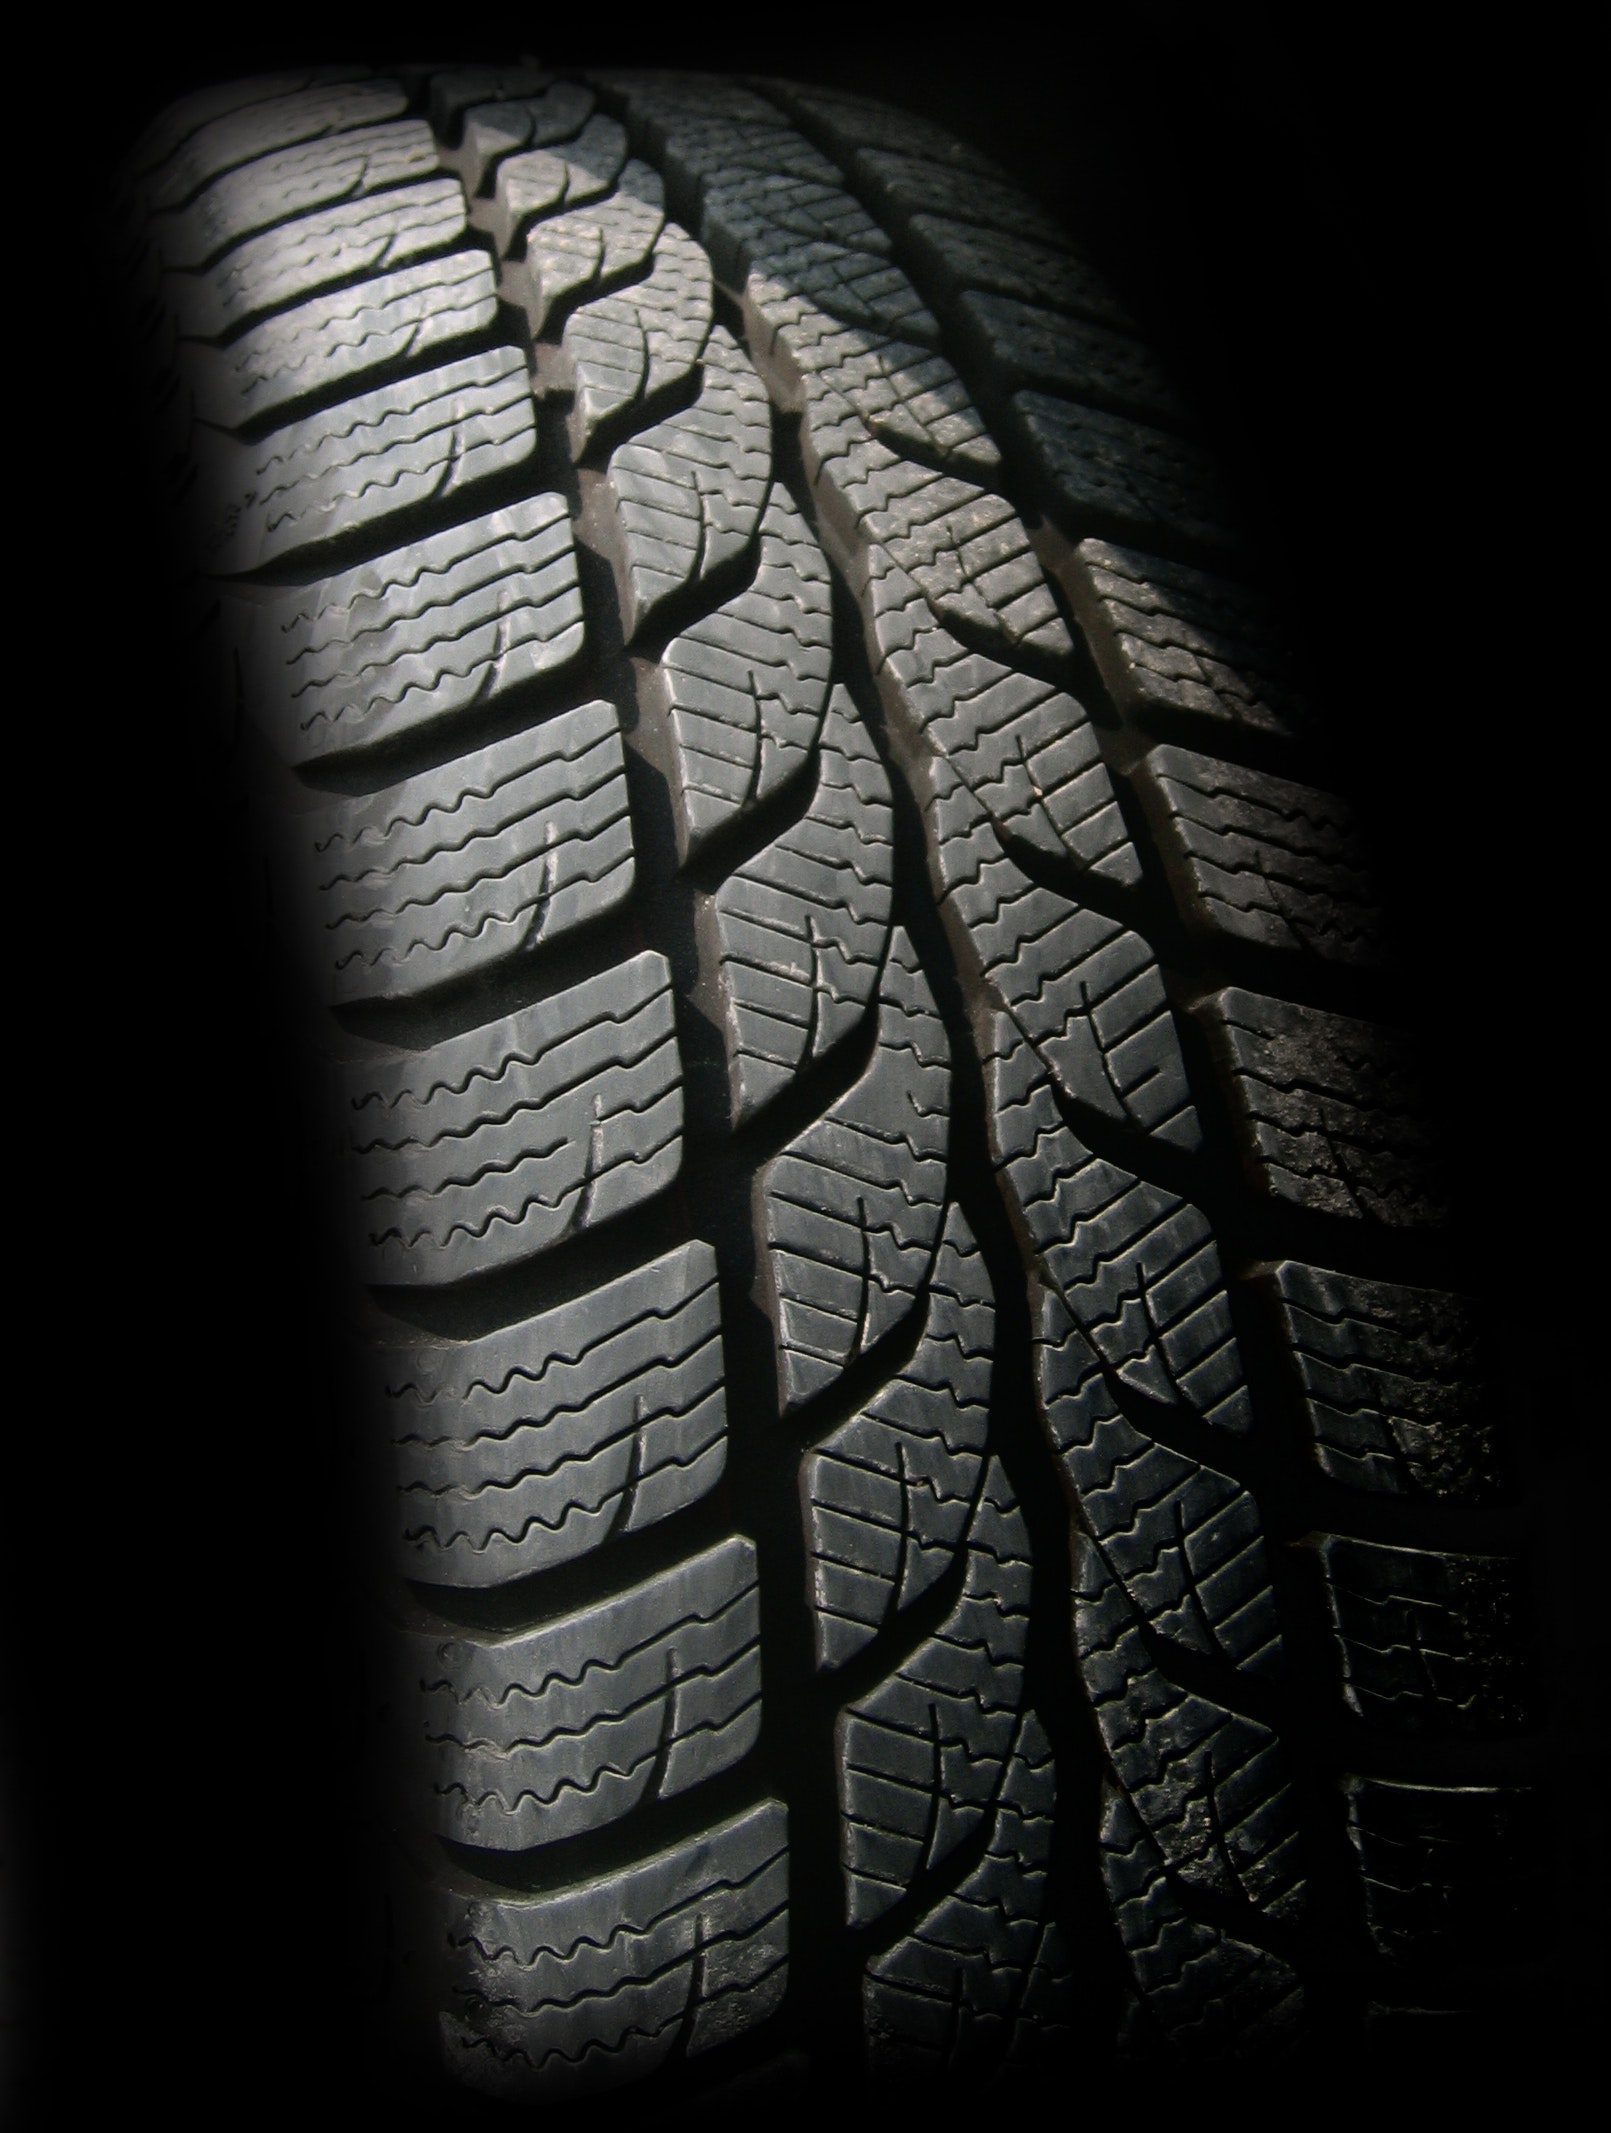 1. Have the condition and pressure of your tyres checked (including spare) -